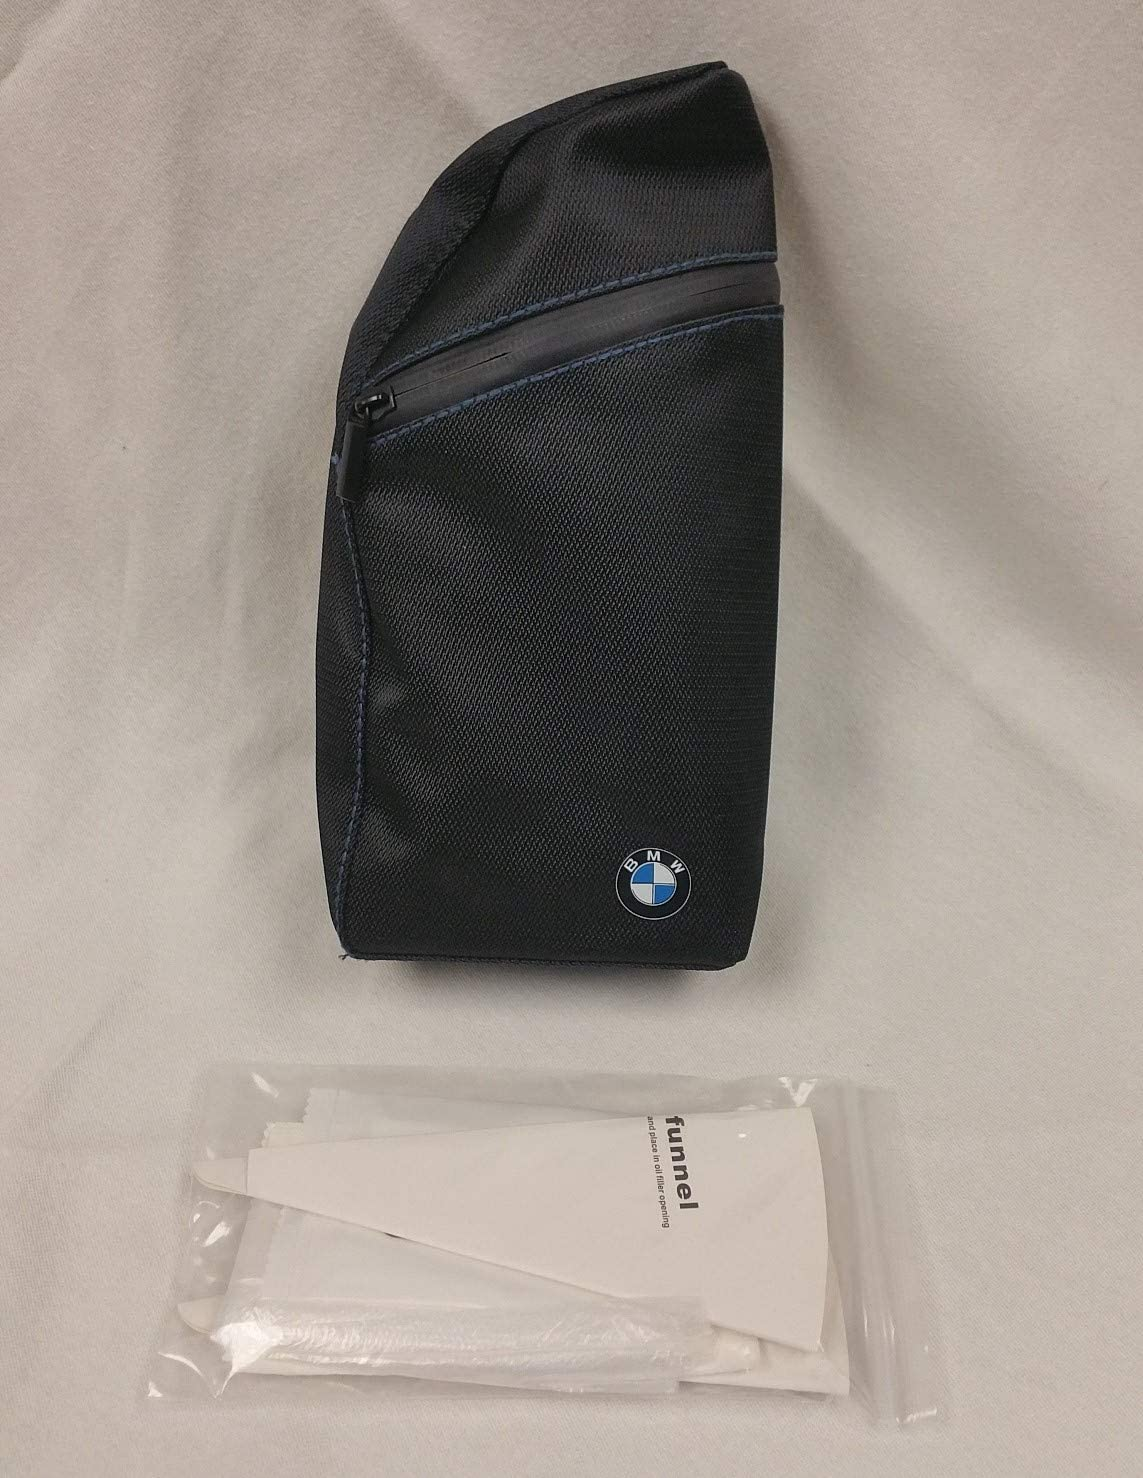 Genuine BMW Spare Top Off Oil For Model Max 82% OFF Any Bag Kit Pouch Discount is also underway